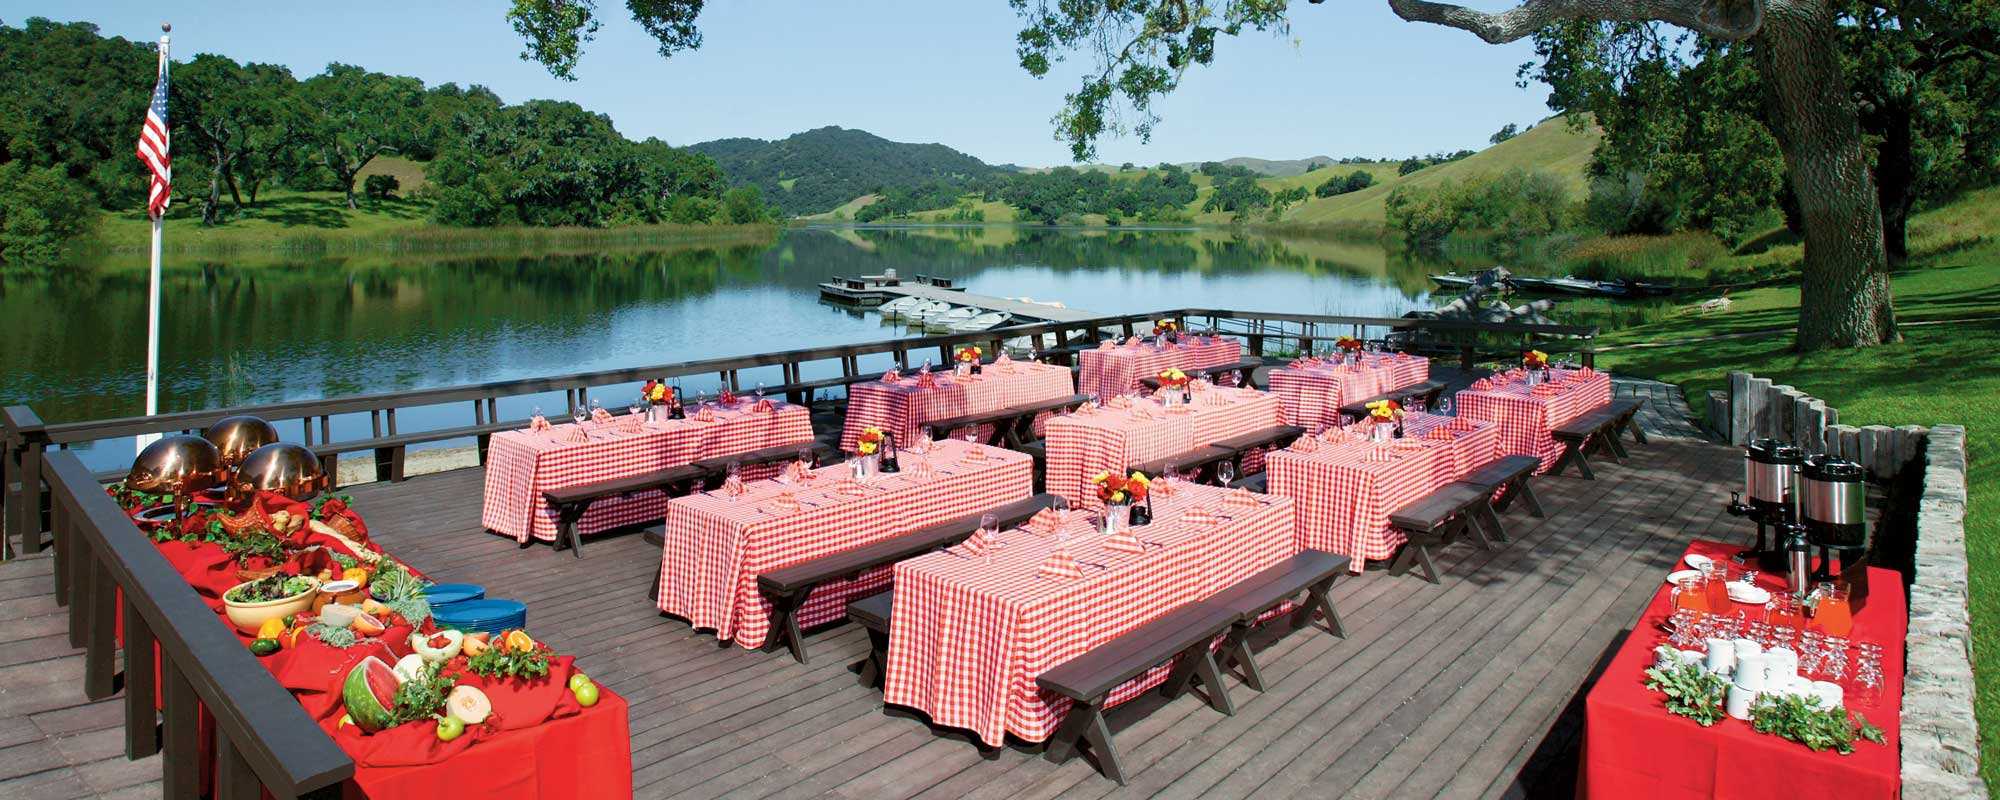 Alisal Lake makes the perfect backdrop for your event and meeting dinners.